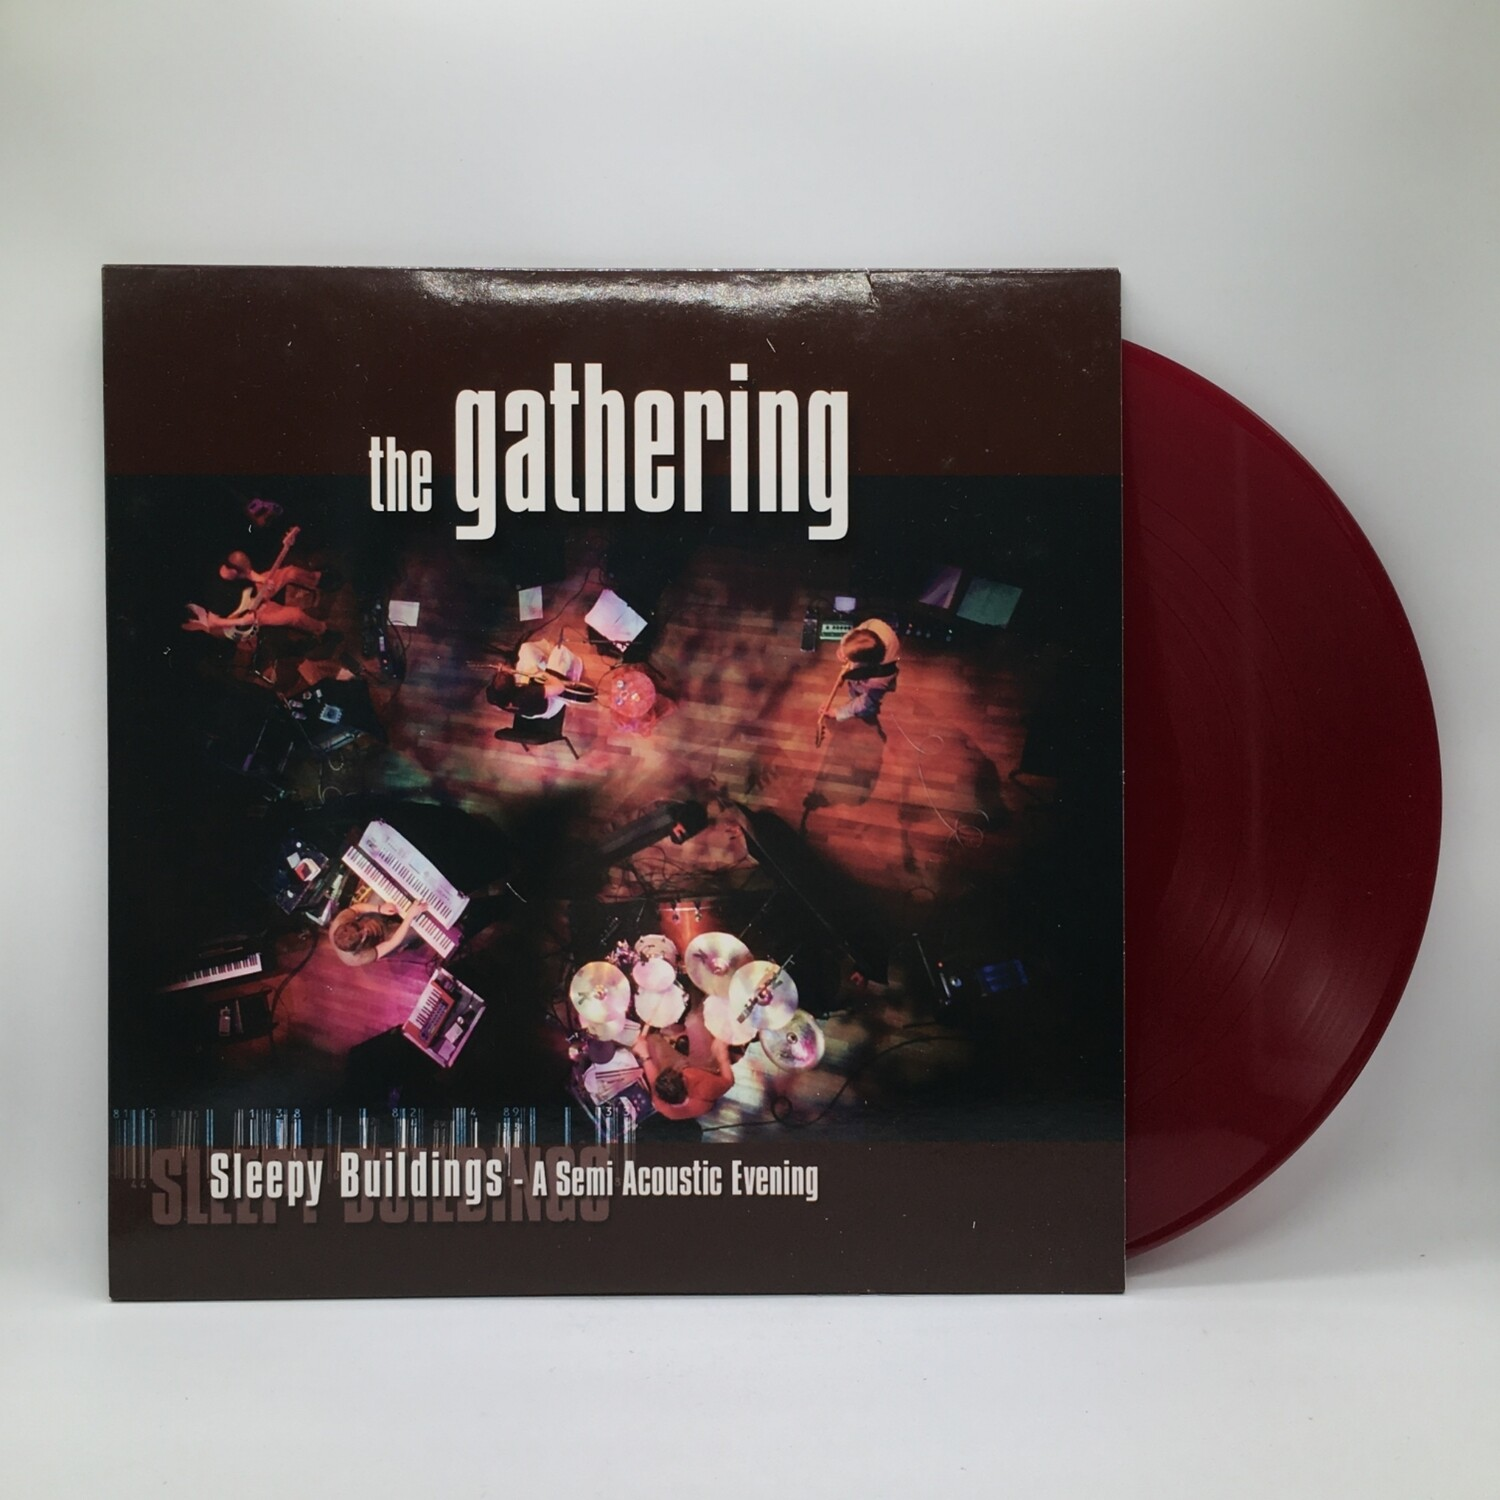 THE GATHERING -SLEEPING BUILDING: A SEMI ACOUSTIC EVENING- 2XLP (COLOR VINYL)